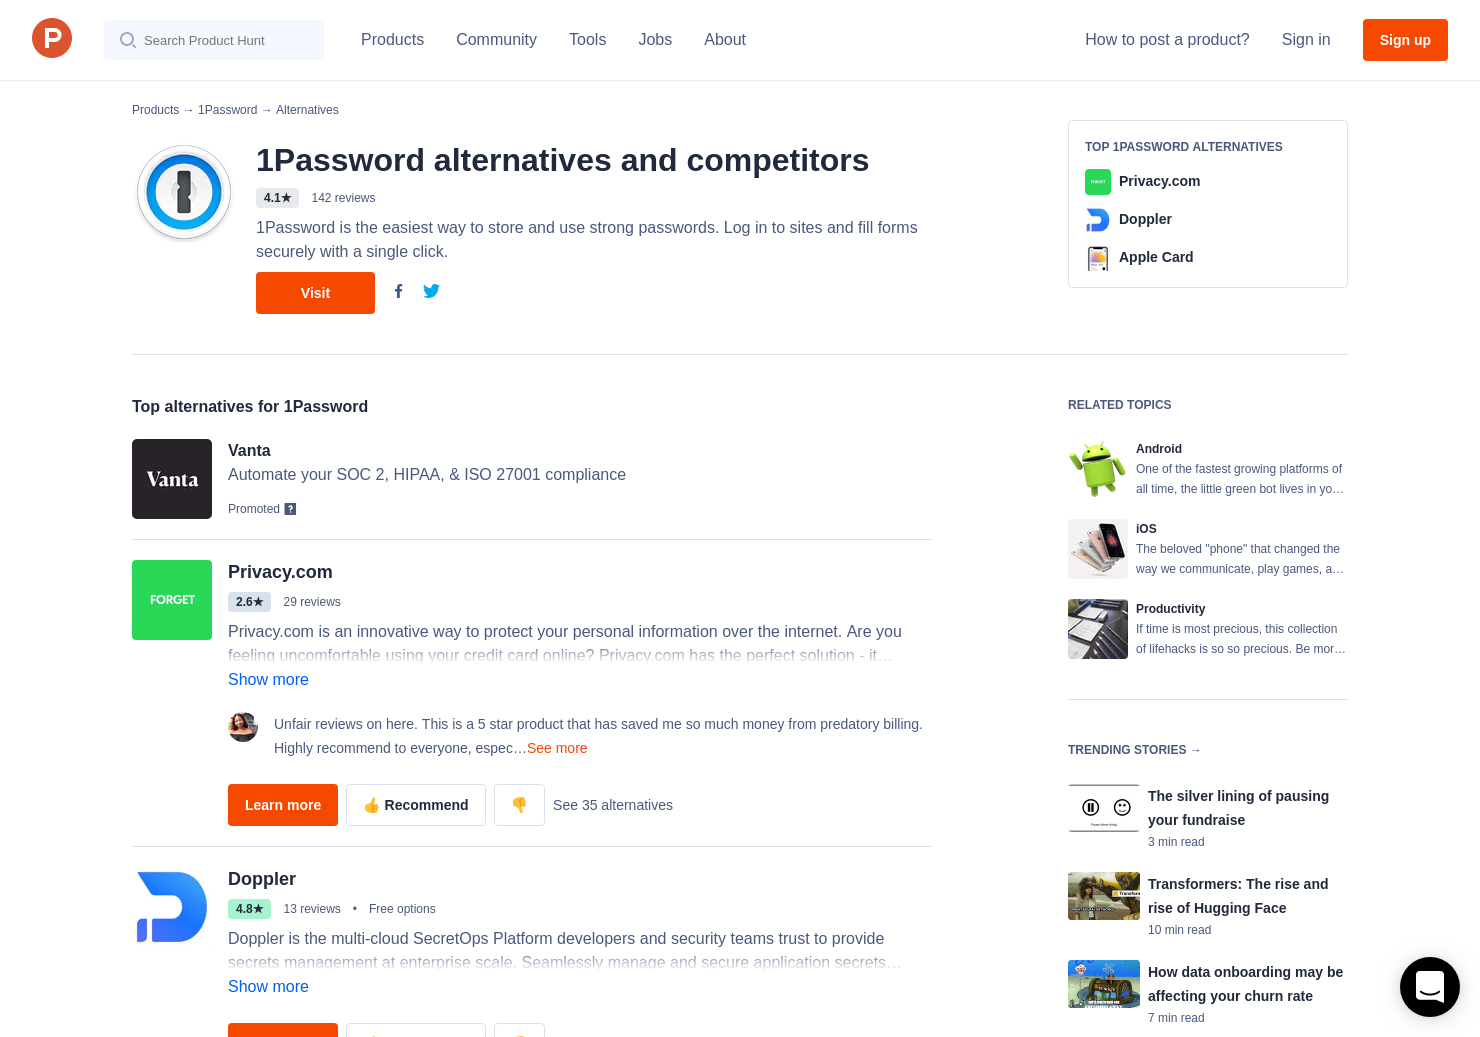 15 Alternatives to 1Password Business | Product Hunt